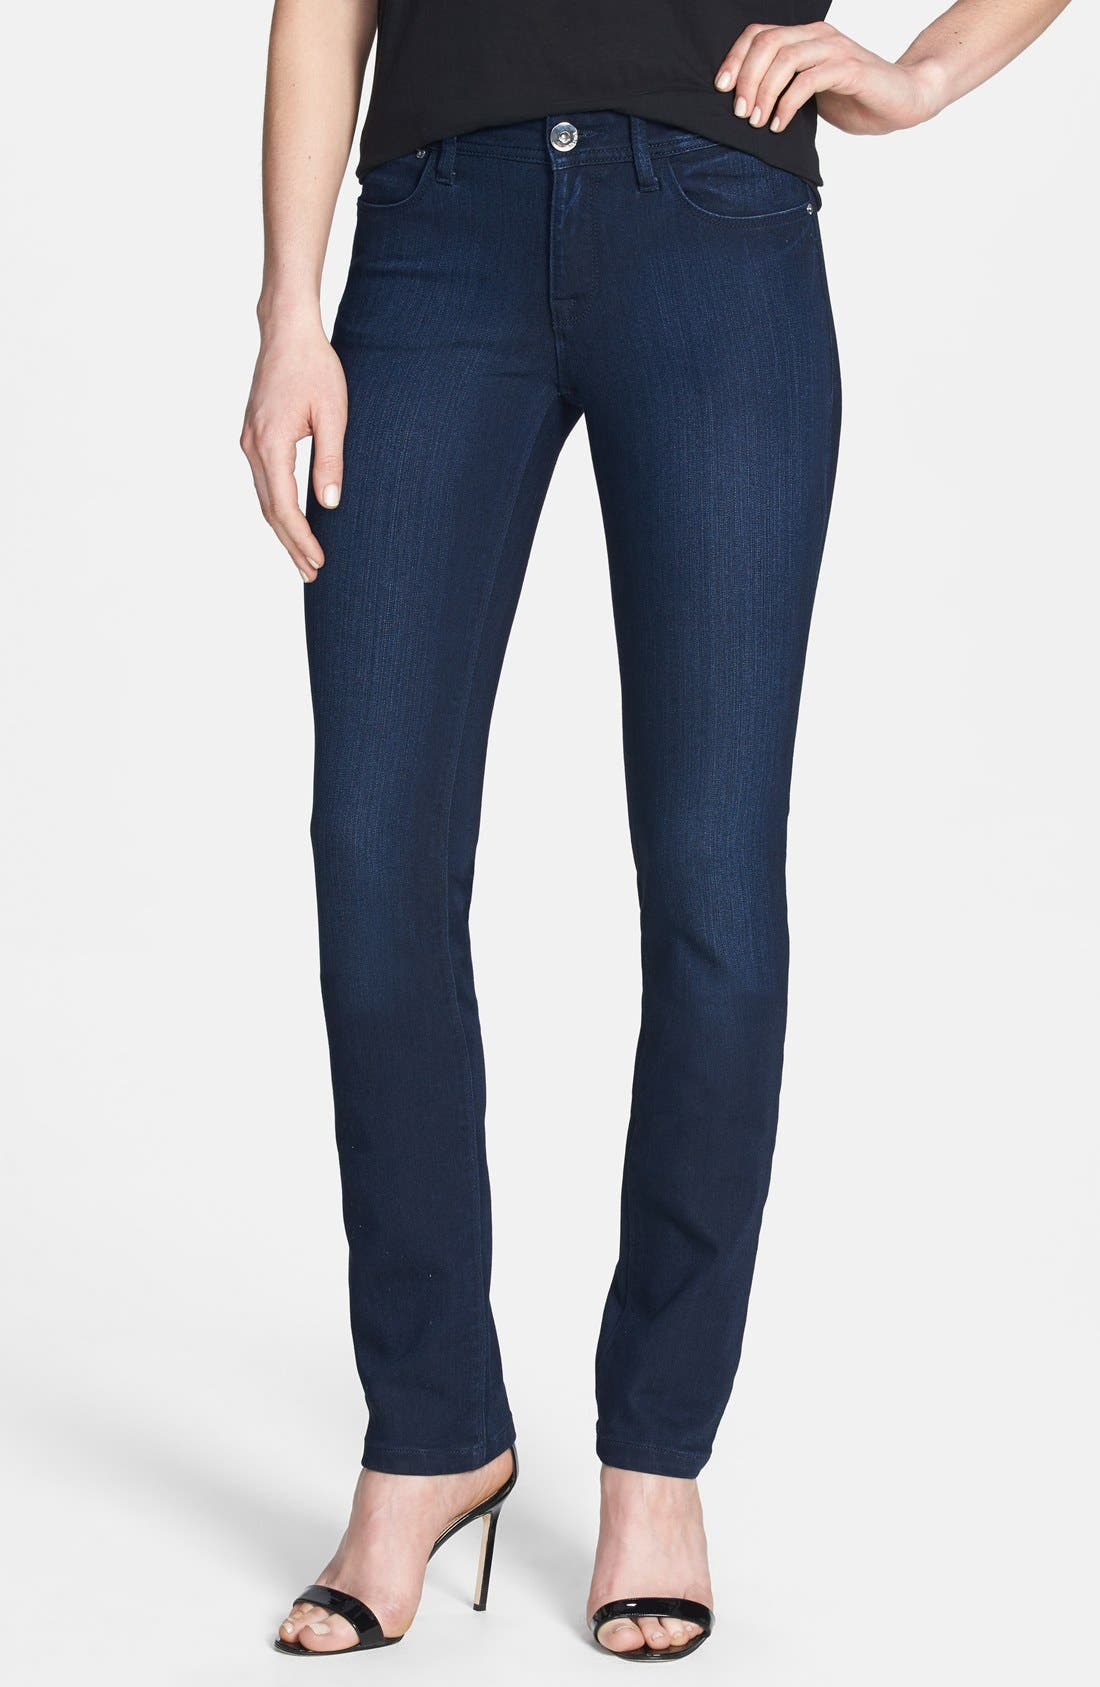 Alternate Image 1 Selected - DL1961 'Coco' Curvy Straight Jeans (Wooster)